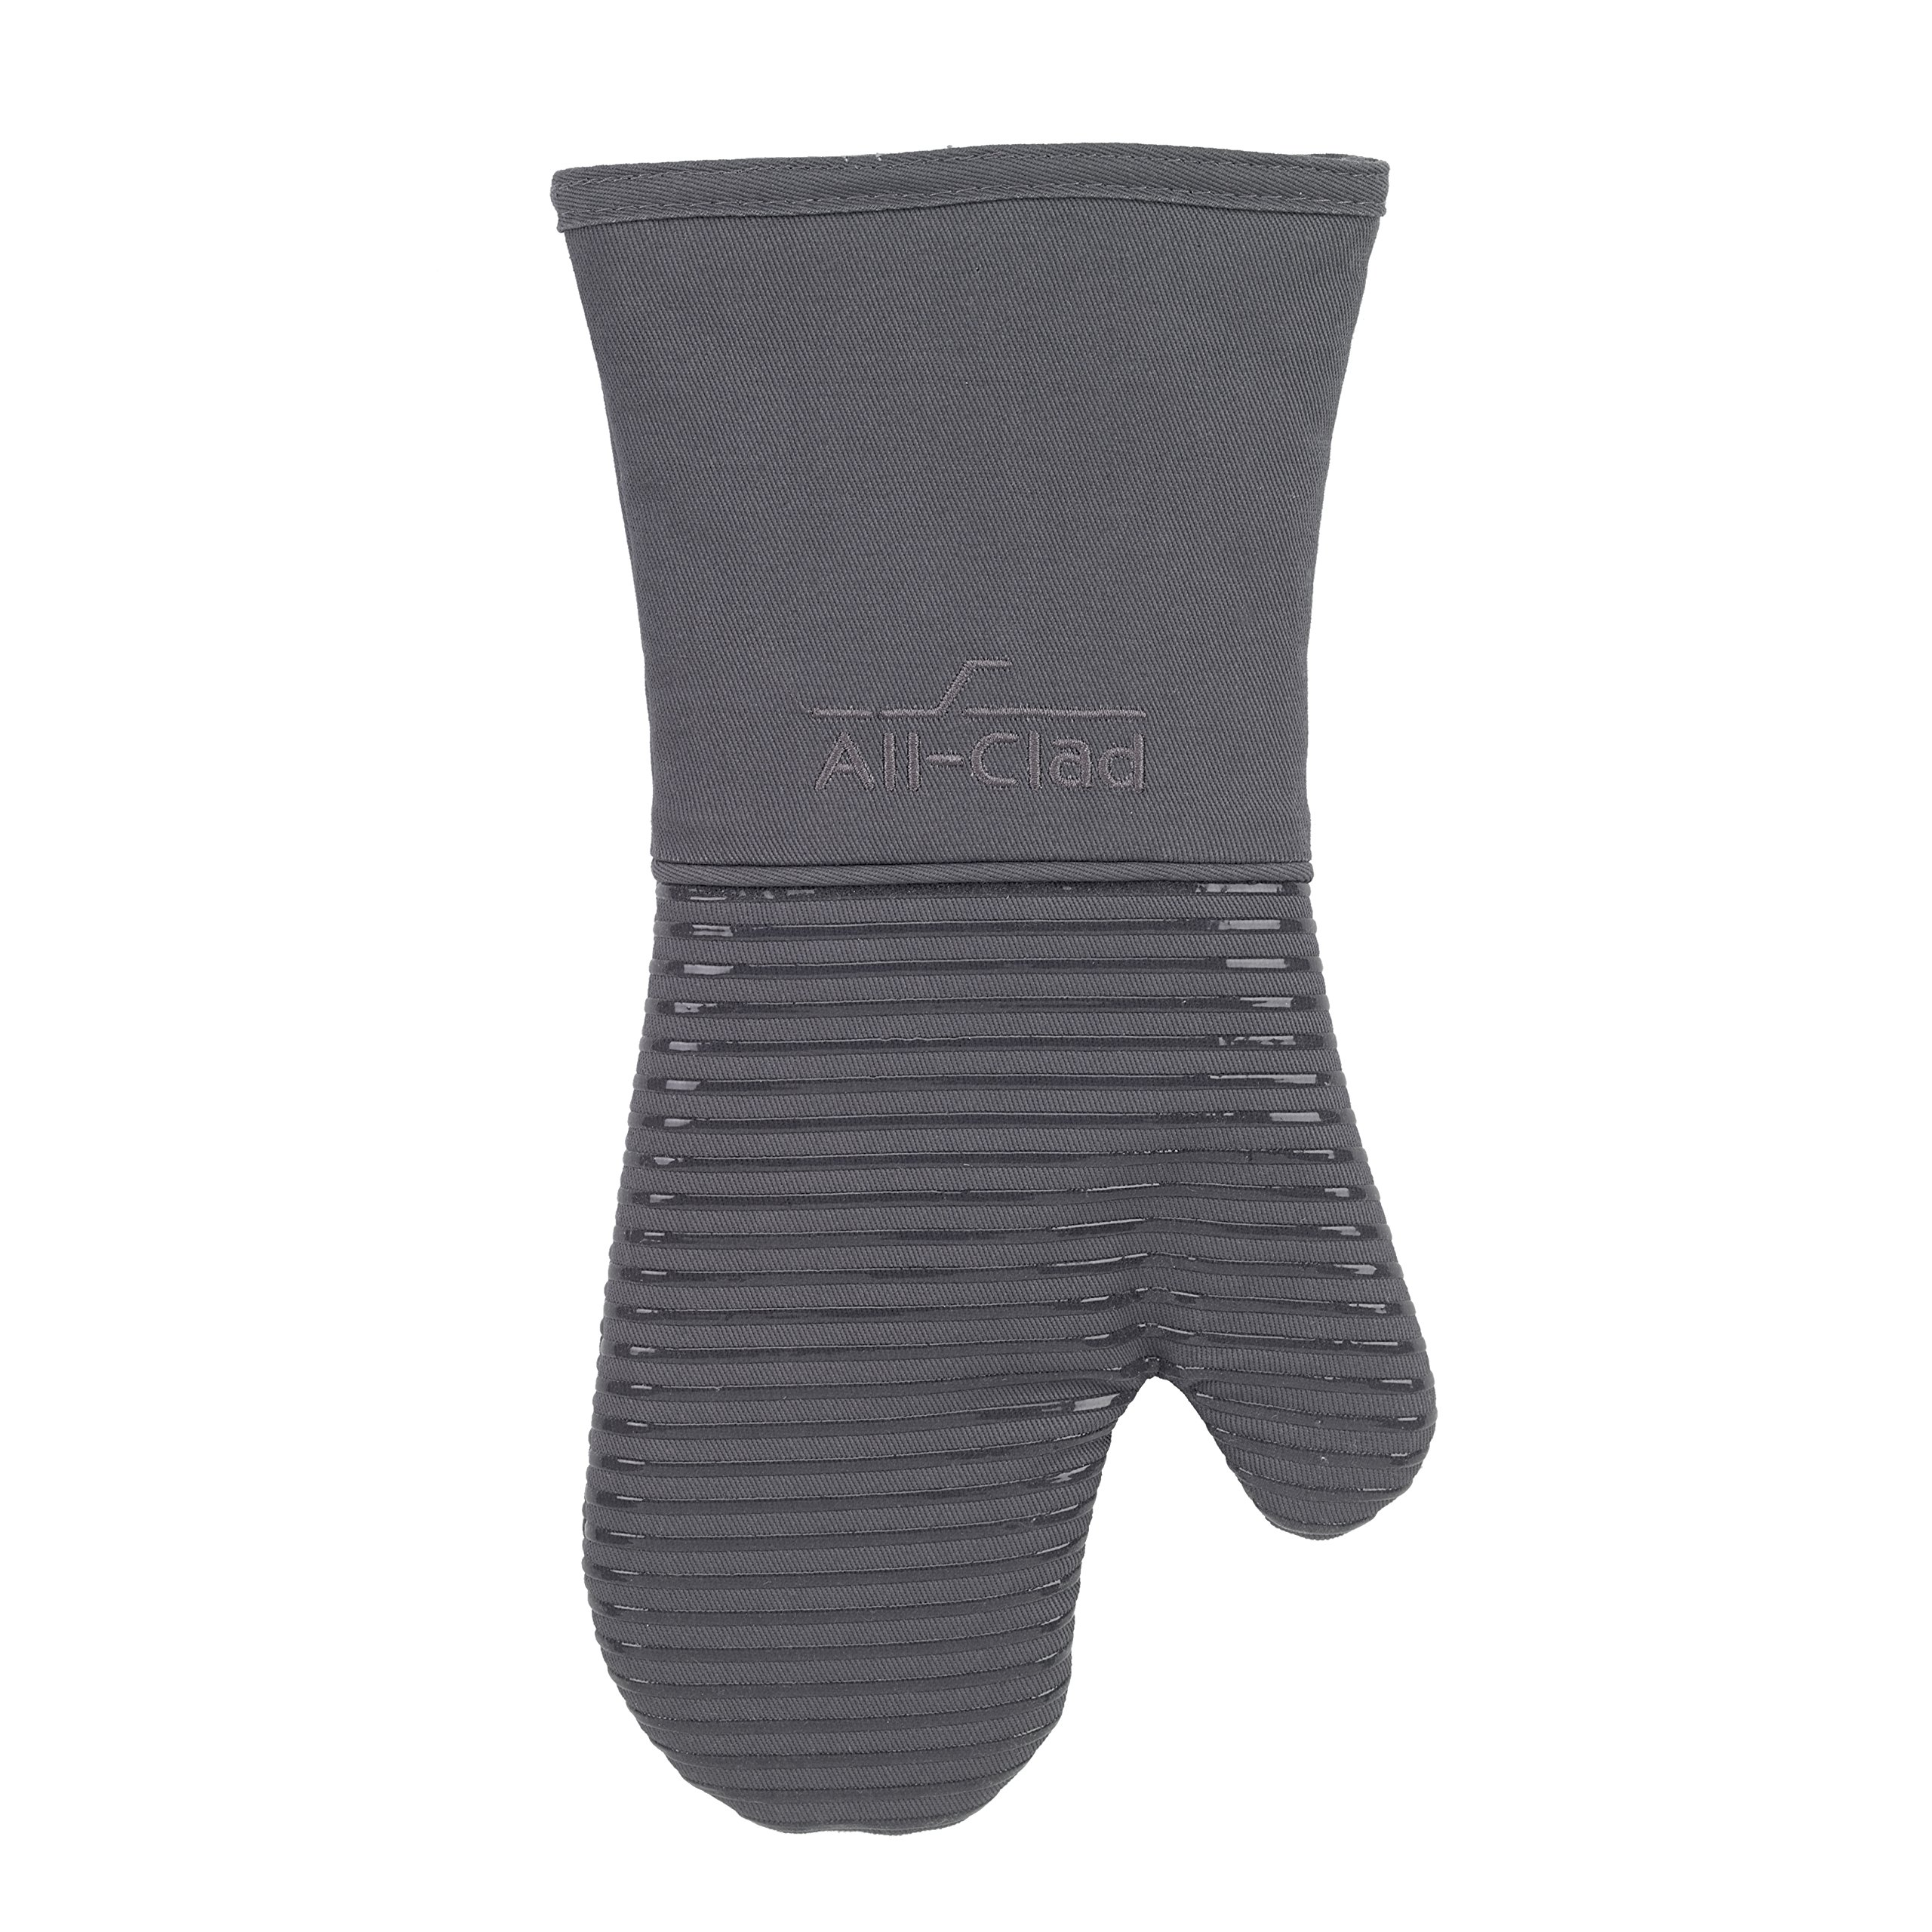 All-Clad Textiles Deluxe Heat and Stain Resistant Oven Mitt. Made of Silicone Treated Heavyweight 100-Percent Cotton Twill, Machine Washable, 14 x 6.5 Inches, Pewter Grey by All Clad Textiles